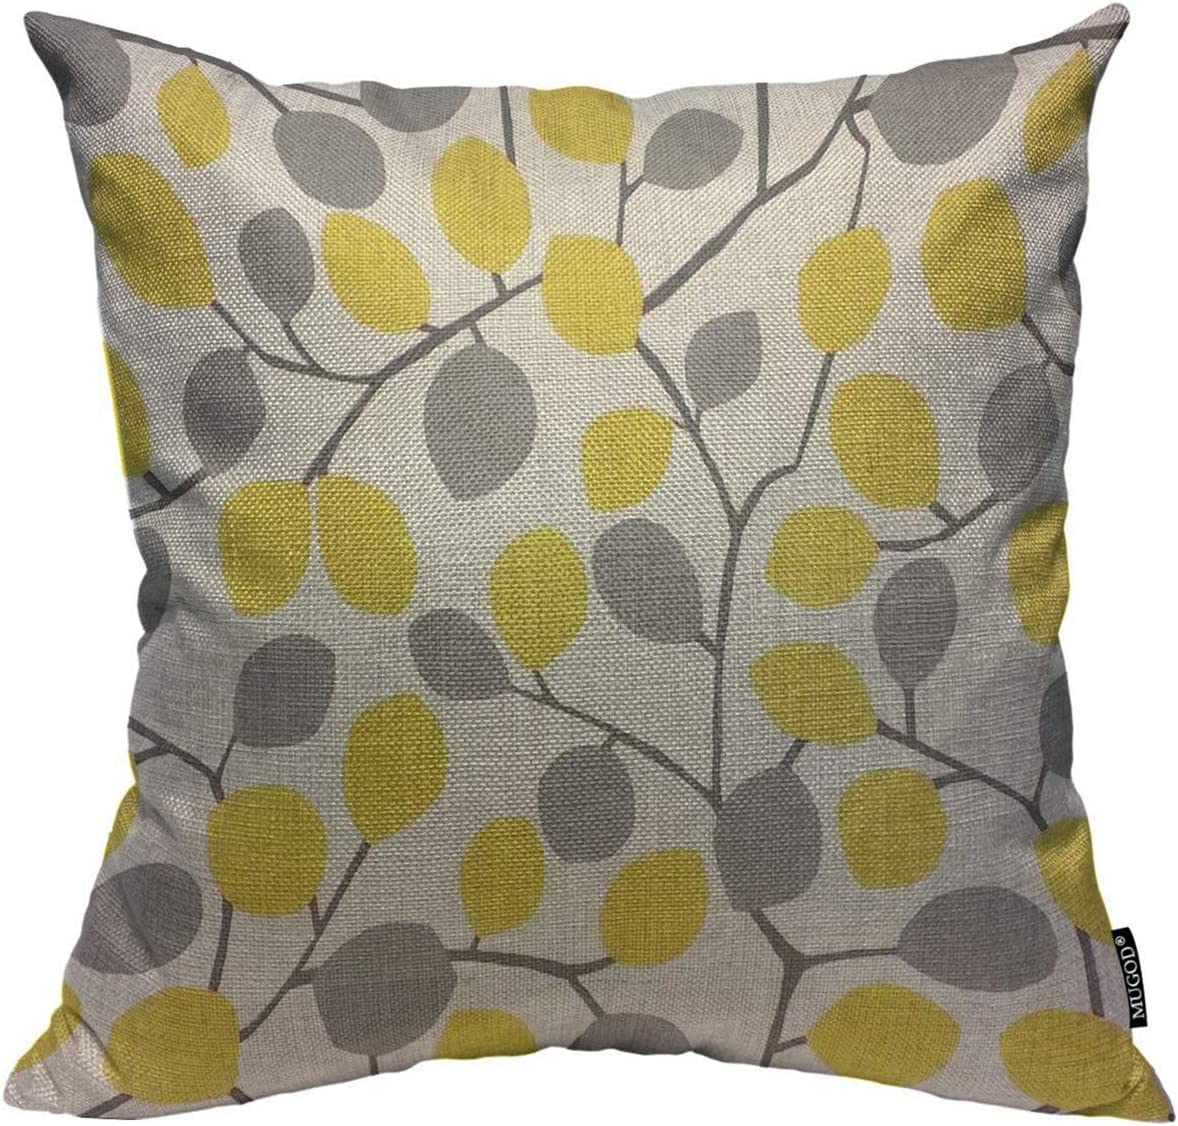 Amazon Com Mugod Throw Pillow Cover Yellow And Grey Seamless Leaves Pattern Home Decorative Linen Square Pillow Case For Men Women Boy Gilrs Bedroom Livingroom Cushion Cover 18x18 Inch Pillowcase Home Kitchen